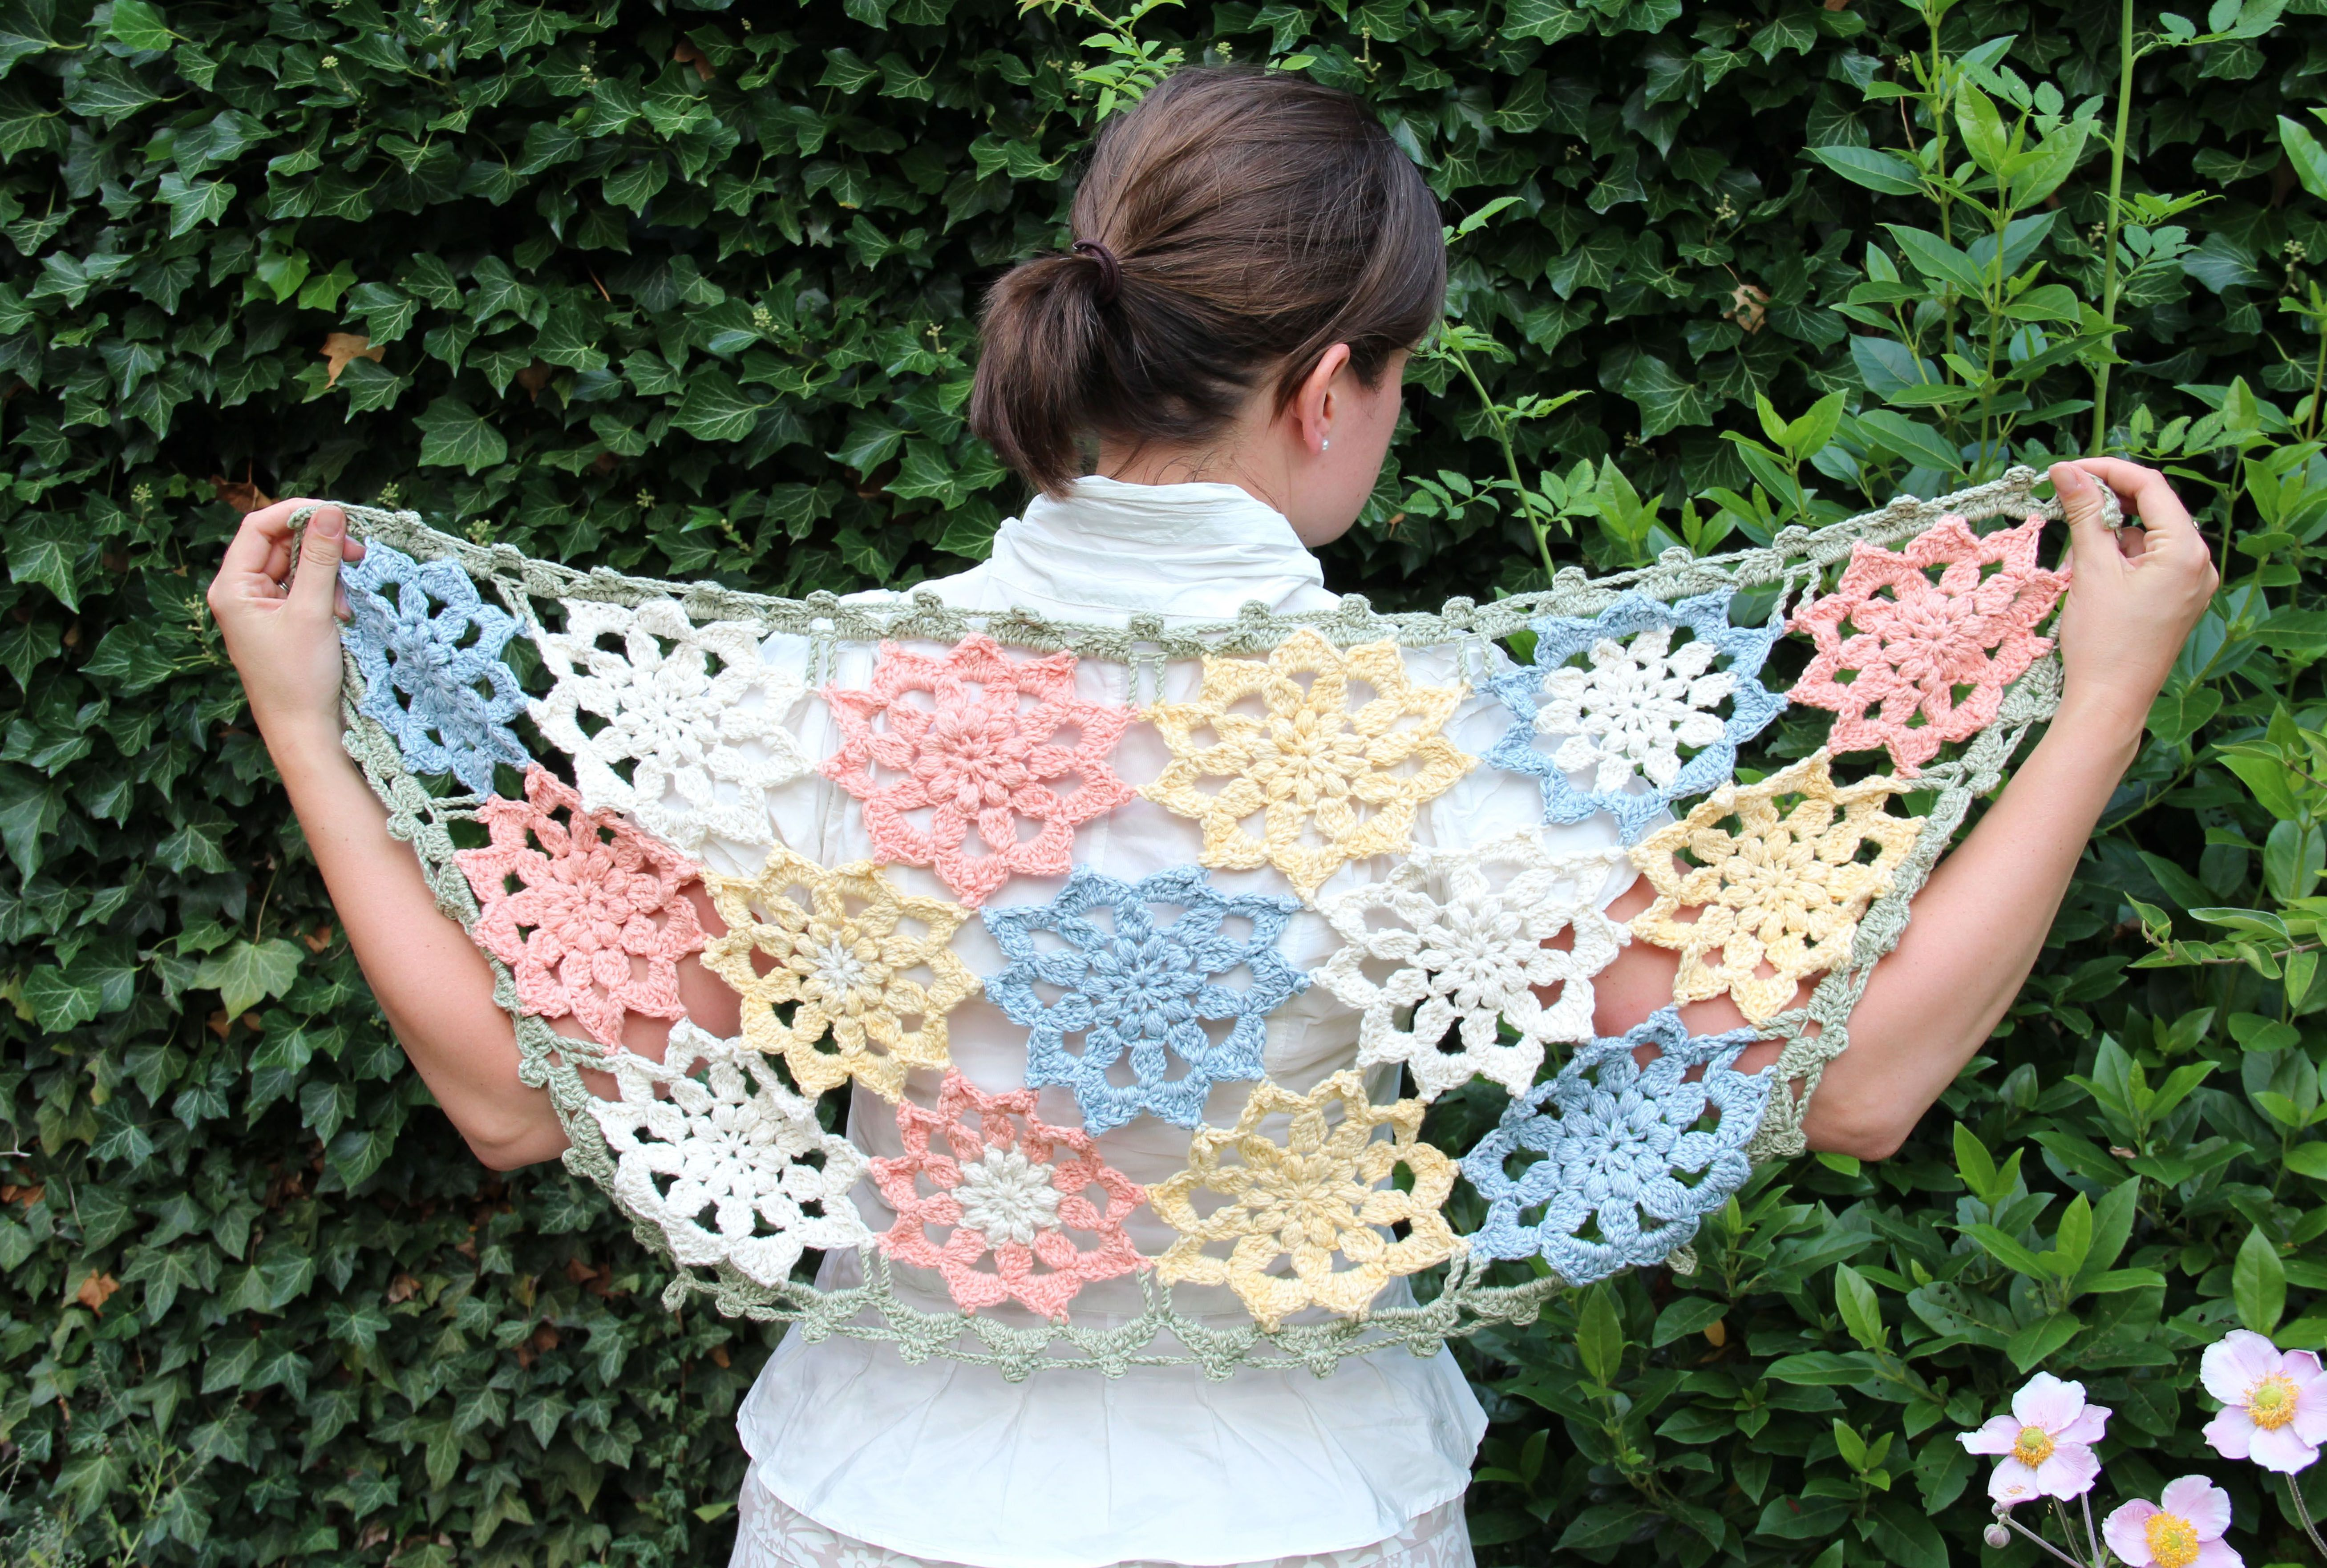 New Crochet Diagrams Funkycrochet Crush Rustic Lace Square Motif Pattern Flower Stole Very Clear With Step Pictures Text And